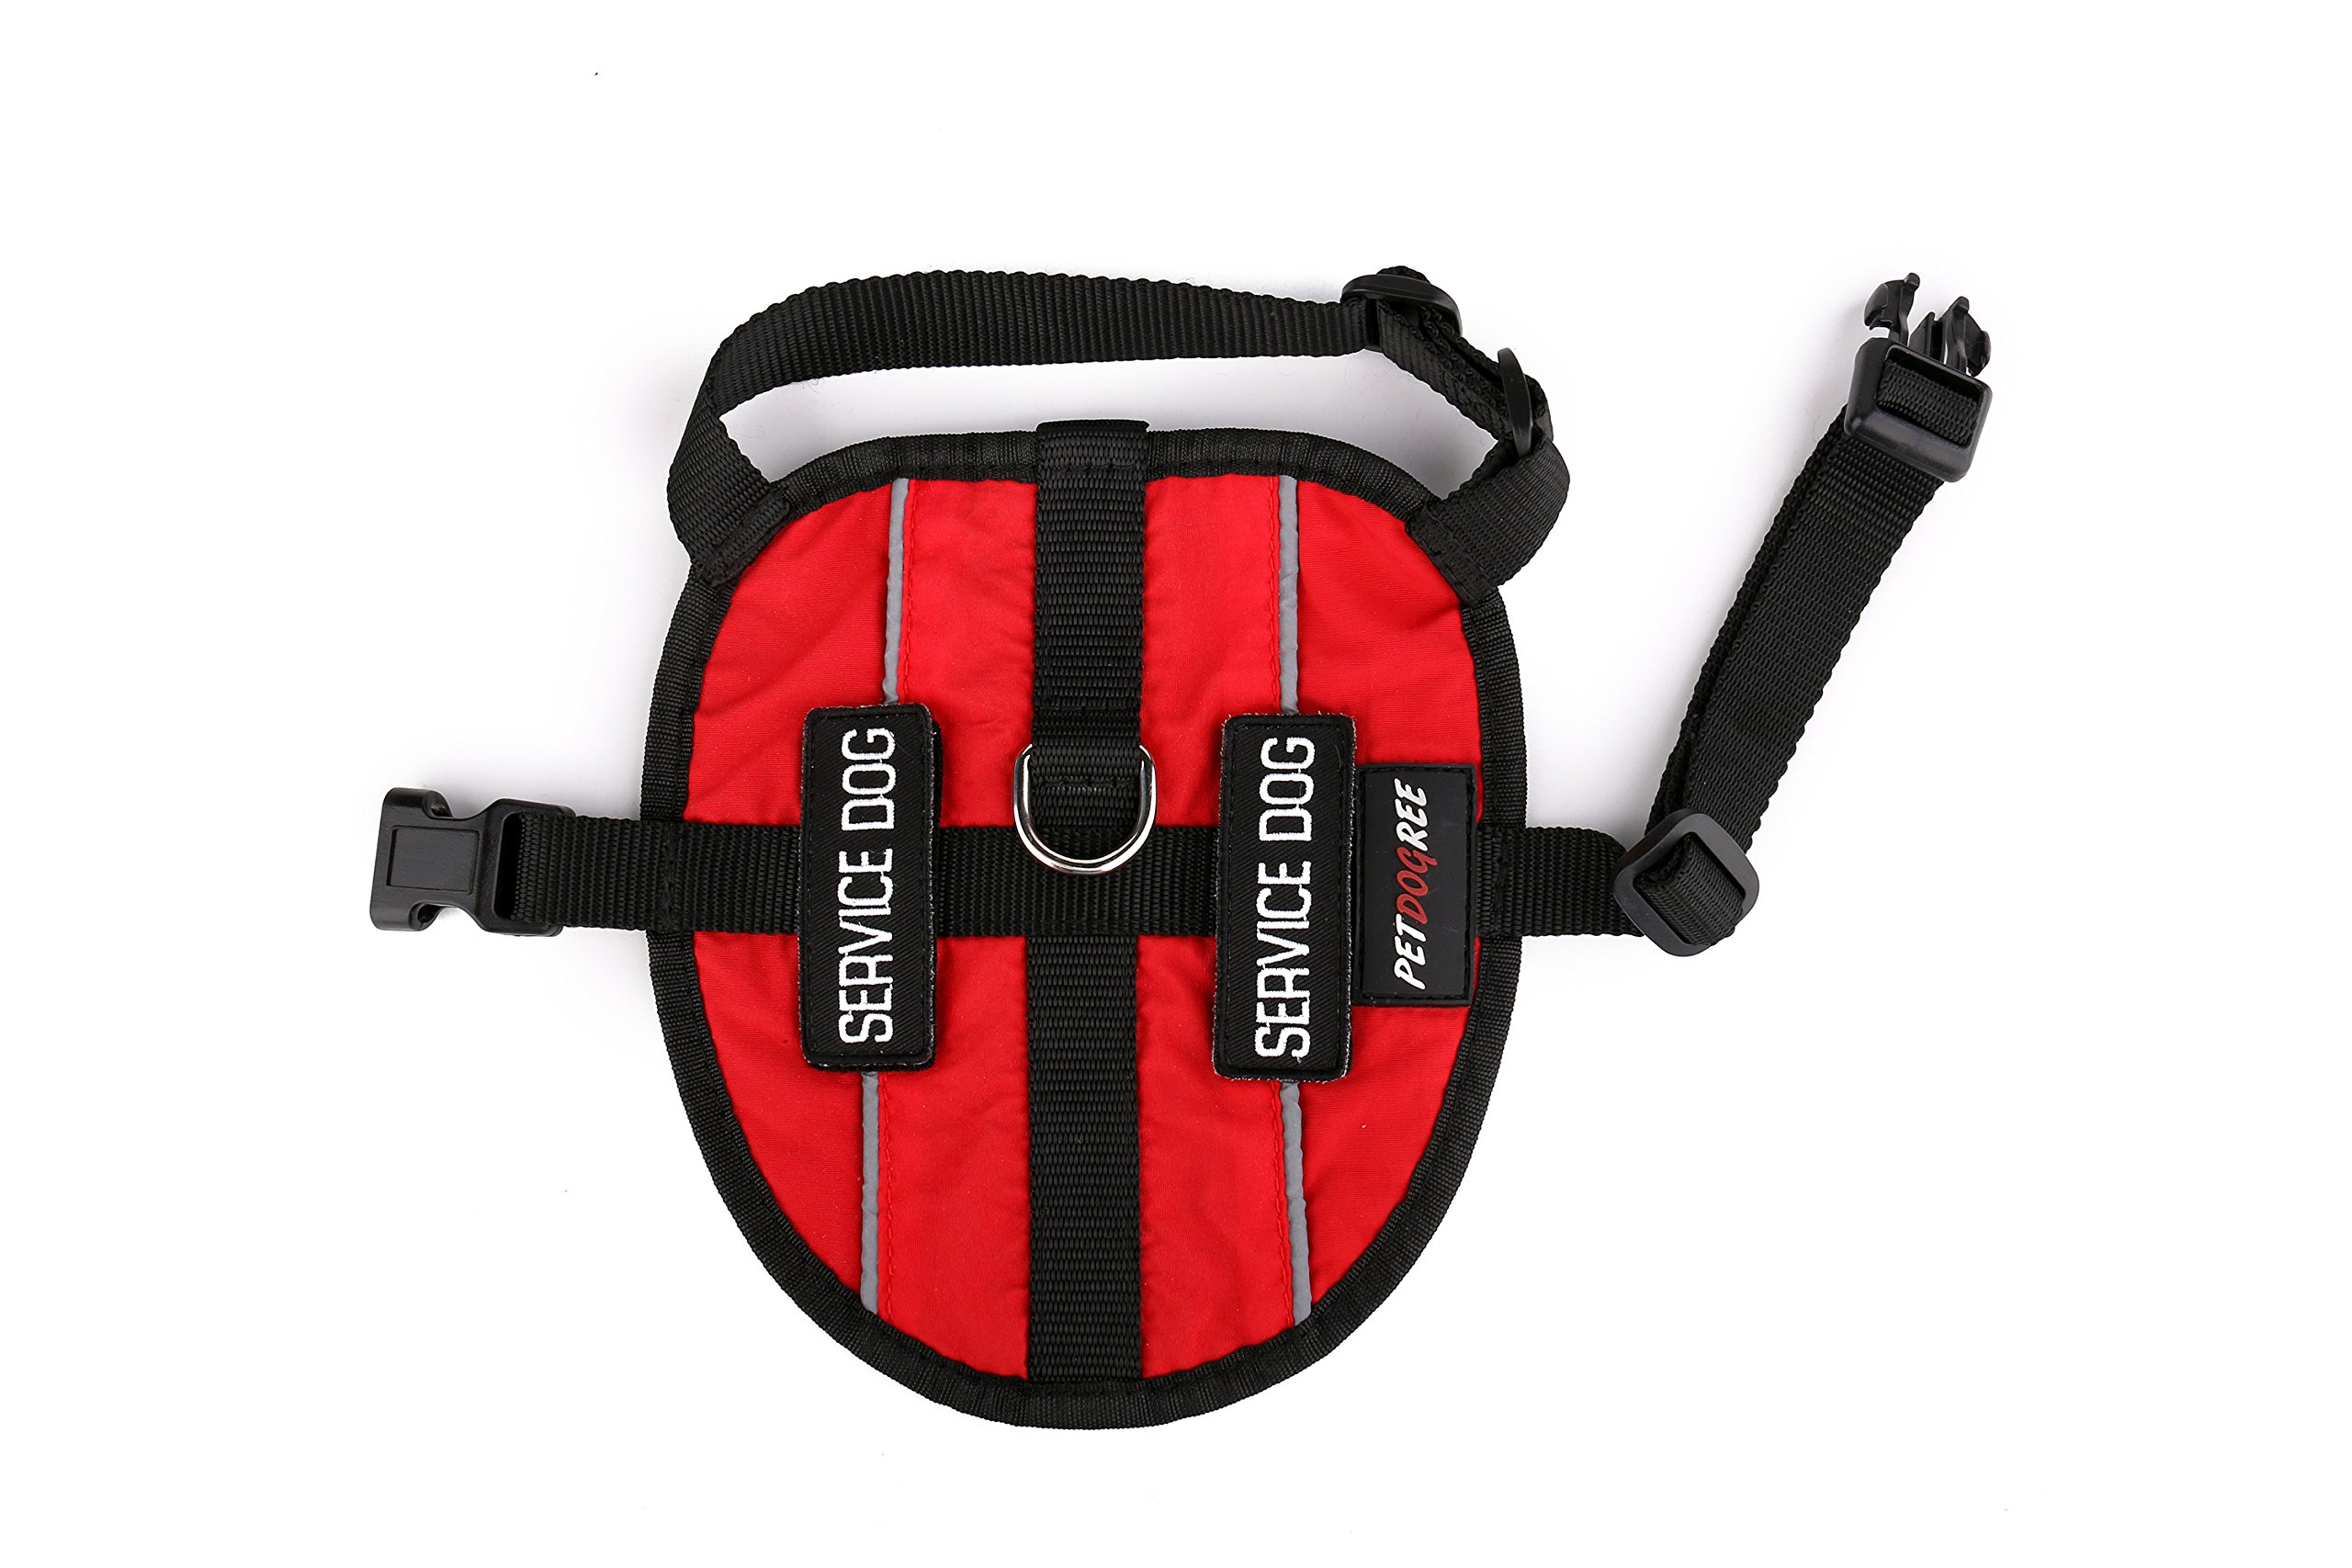 Petdogree Lightweight Reflective Red Service Dog Vest/Harness with Removable Patches (Various Sizes). by Petdogree (Image #5)